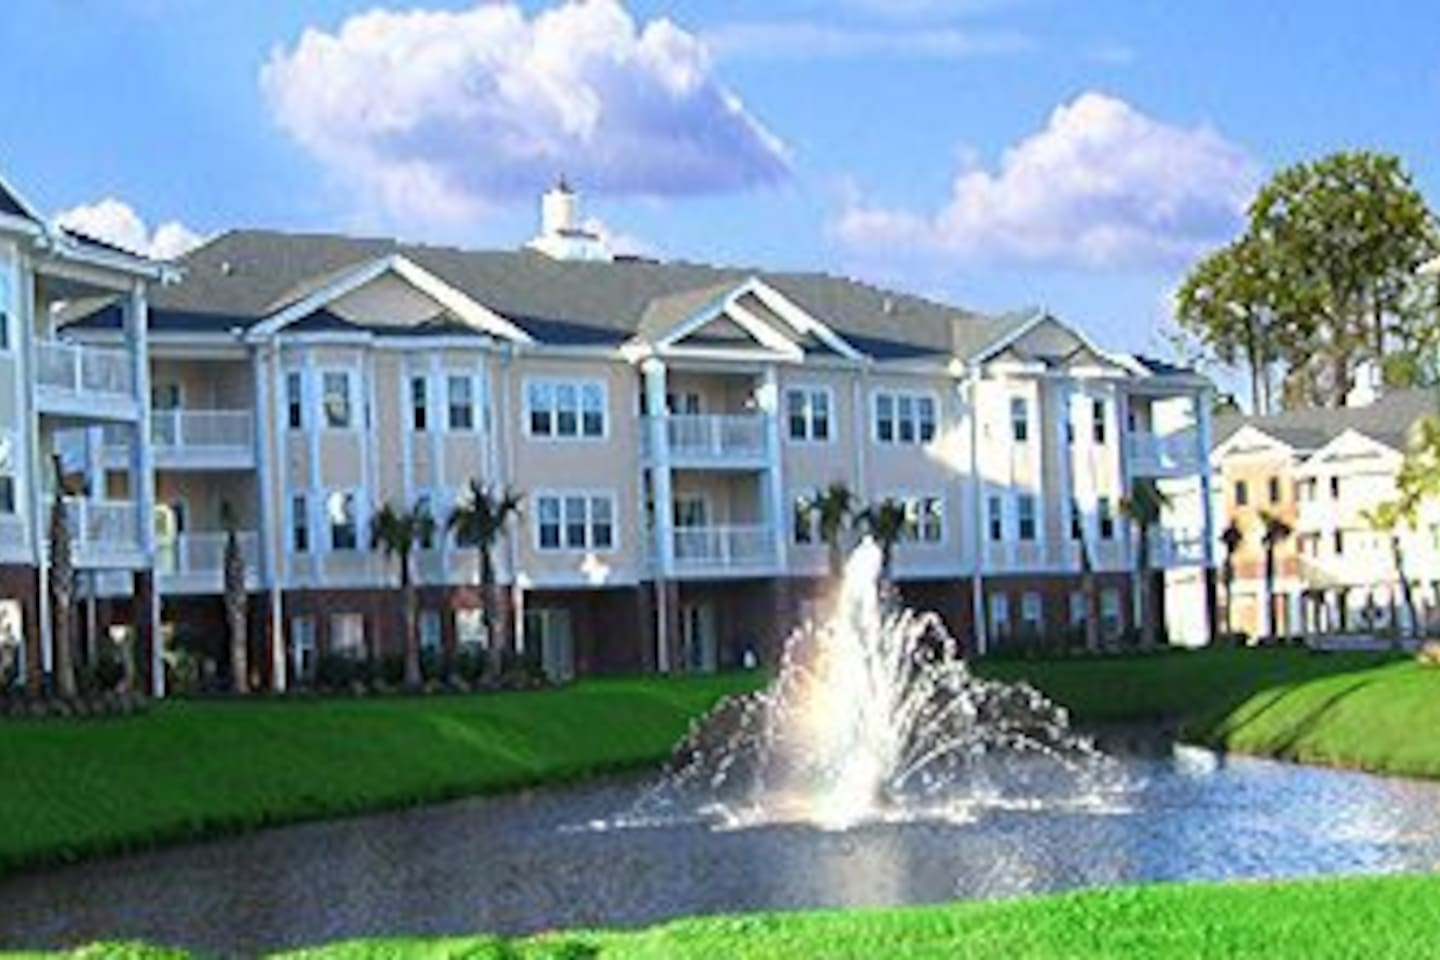 Tupelo Bay 1500 building - 1501 is 1st floor unit on the very right end of the building w/ patio